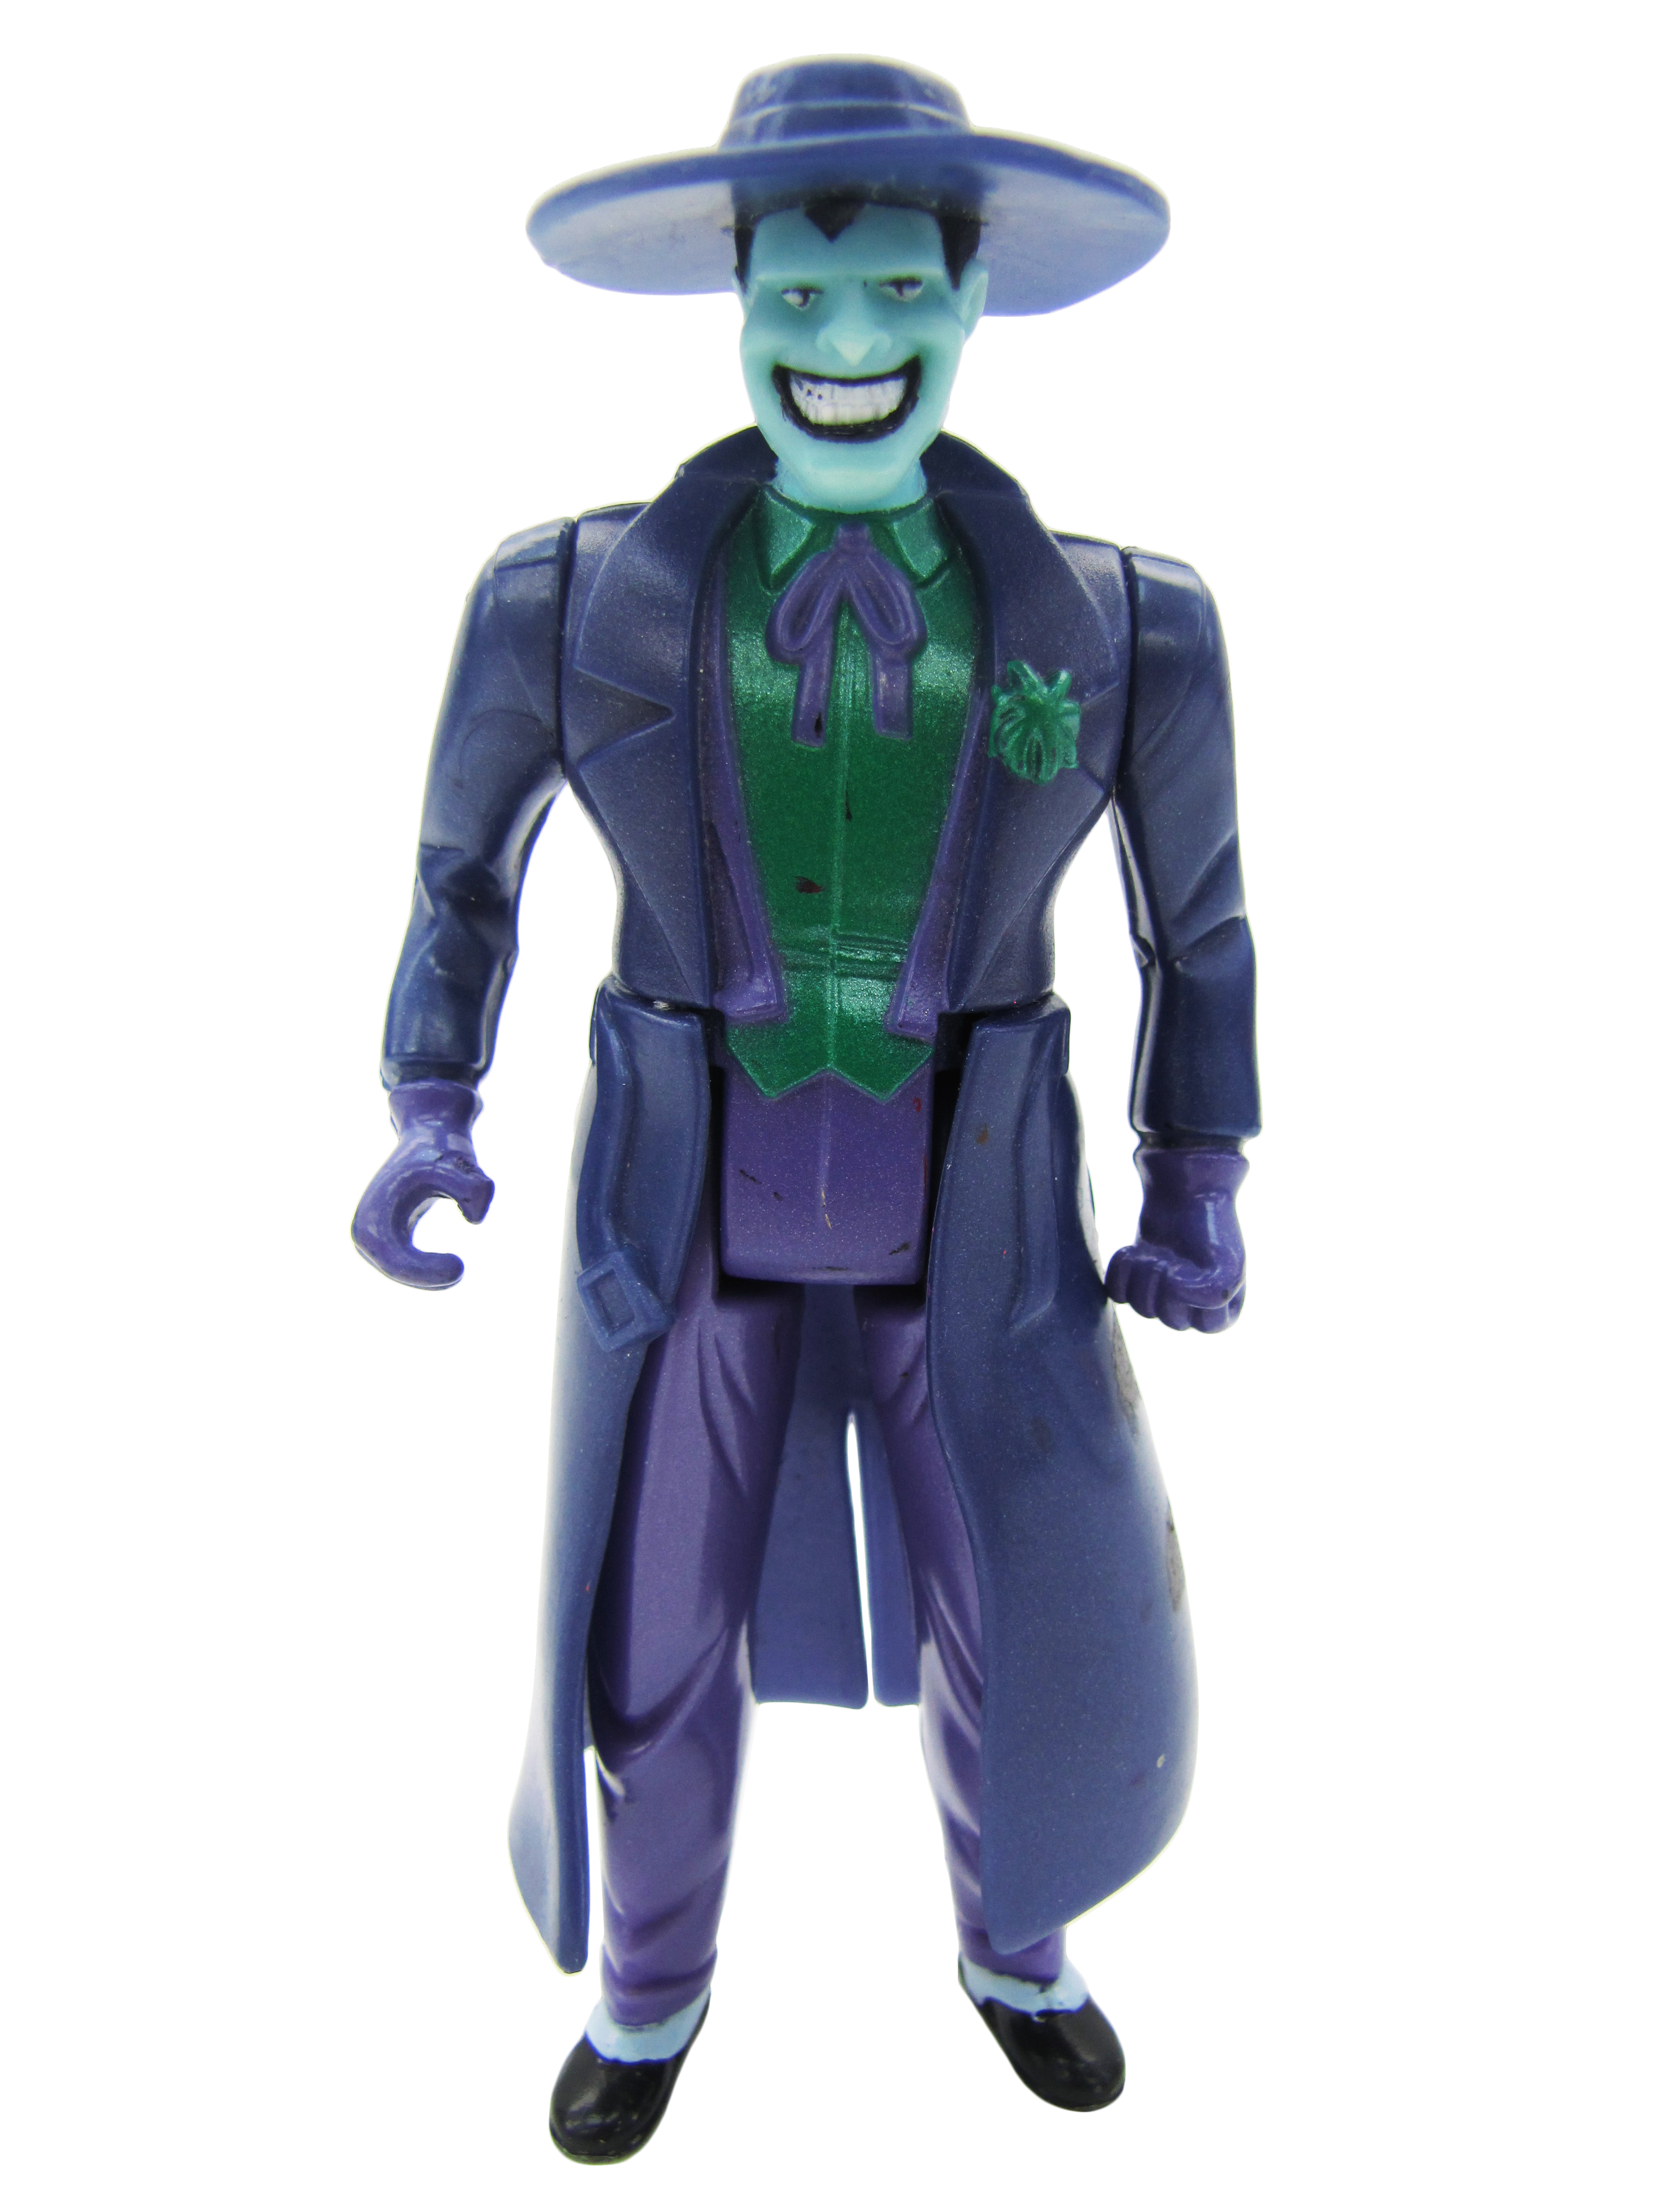 2002 Mission Masters BATMAN VS THE JOKER LAUGHING MATTER JOKER Complete Mint